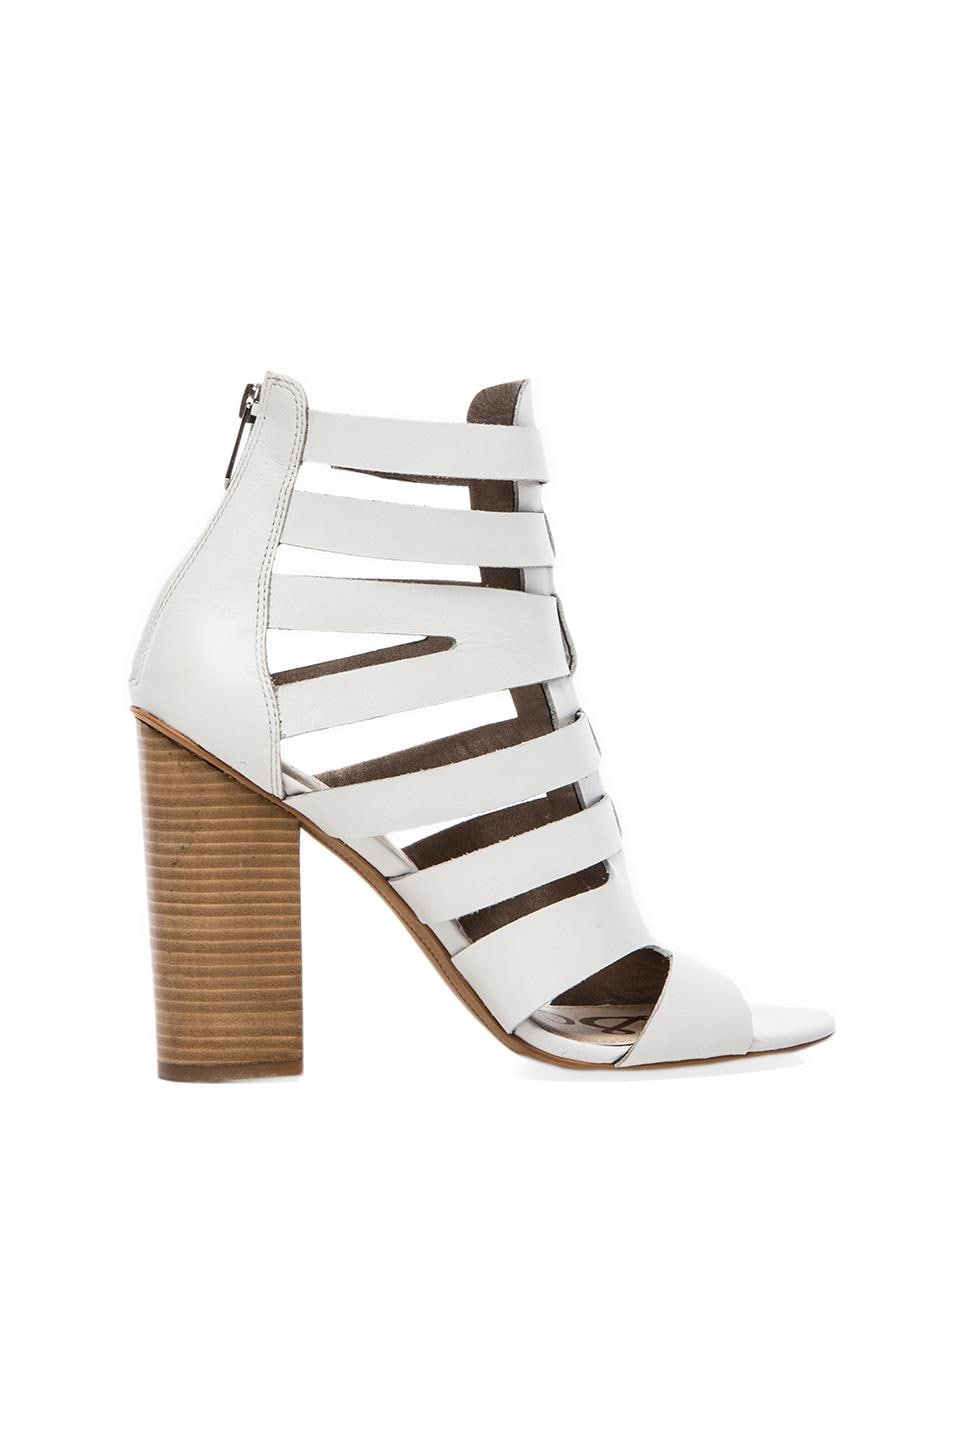 Sam Edelman Yazmine Heel in Snow White